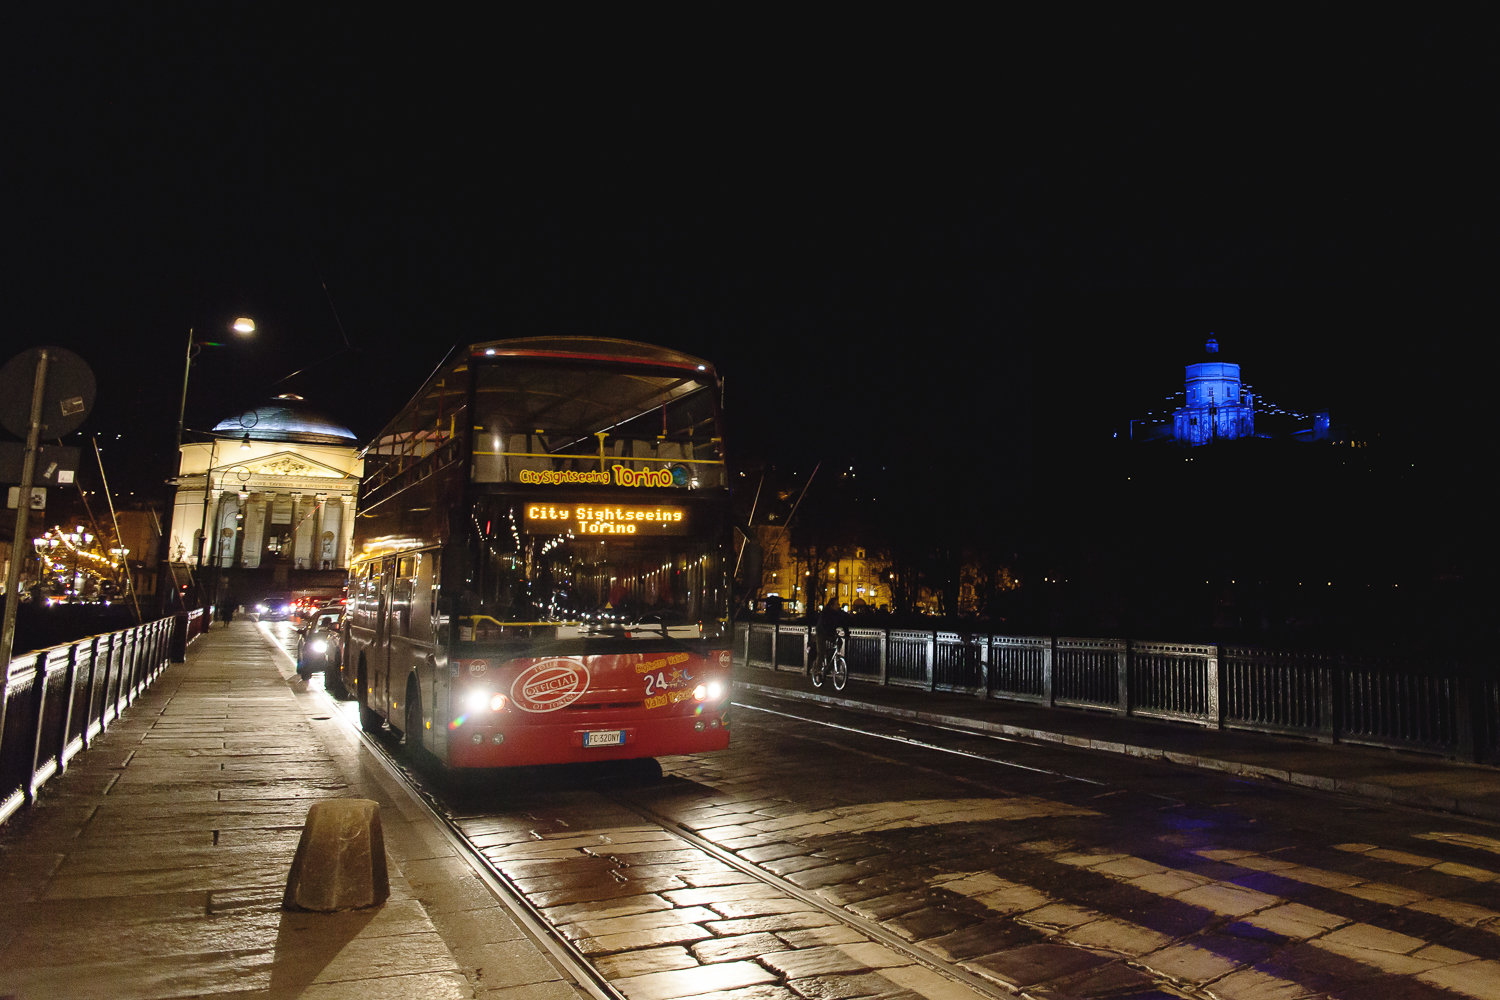 GG 1 dic luci d artista special tour city sightseeing 2